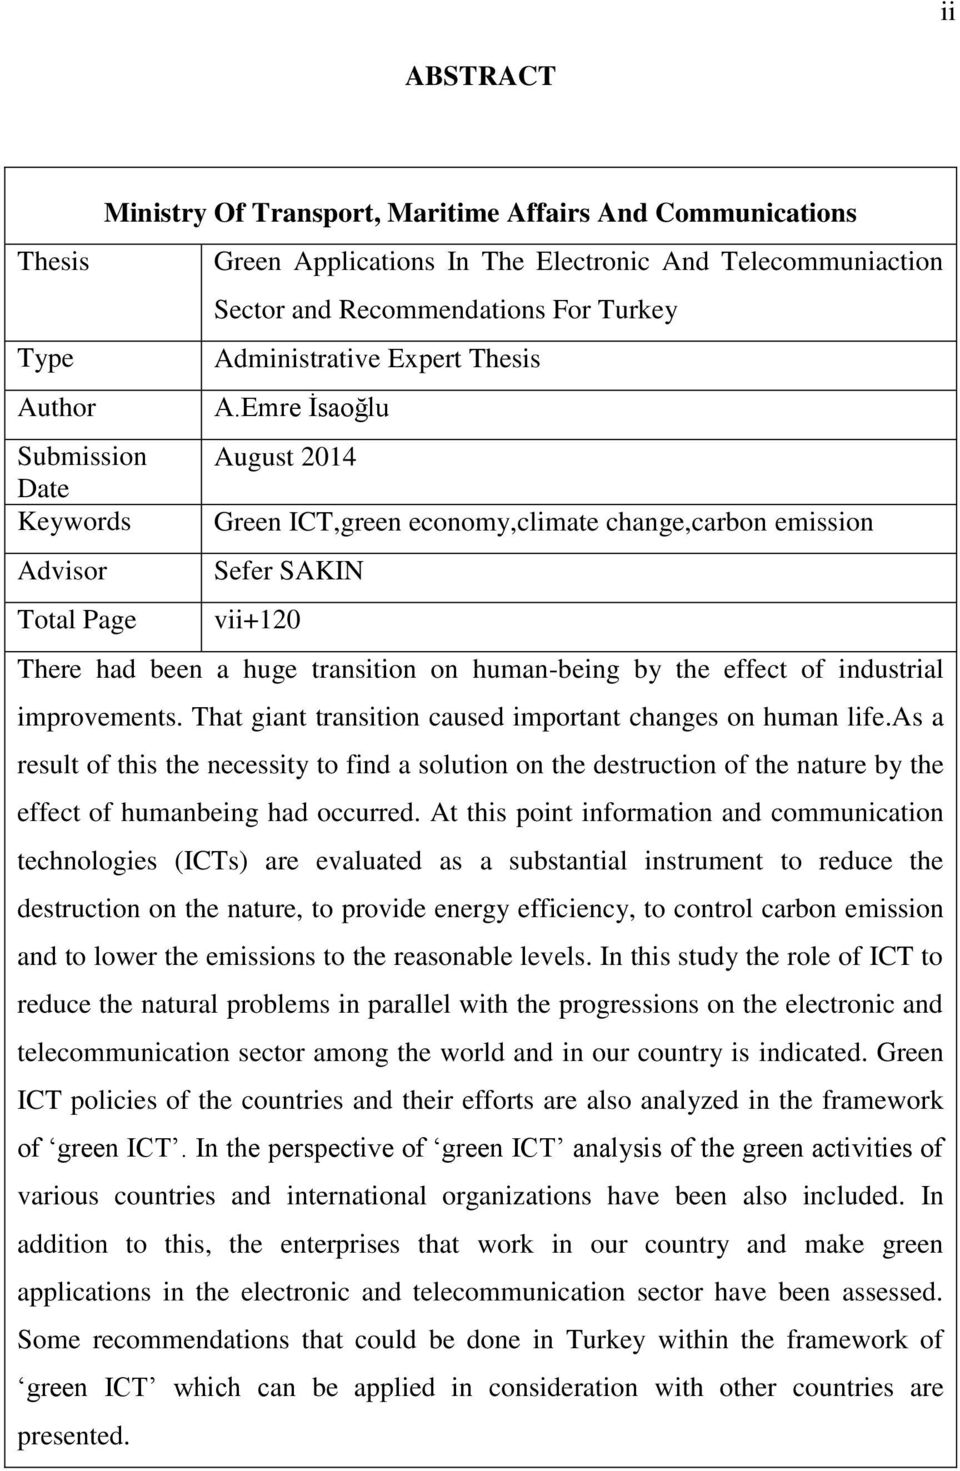 Emre İsaoğlu Submission August 2014 Date Keywords Green ICT,green economy,climate change,carbon emission Advisor Sefer SAKIN Total Page vii+120 There had been a huge transition on human-being by the